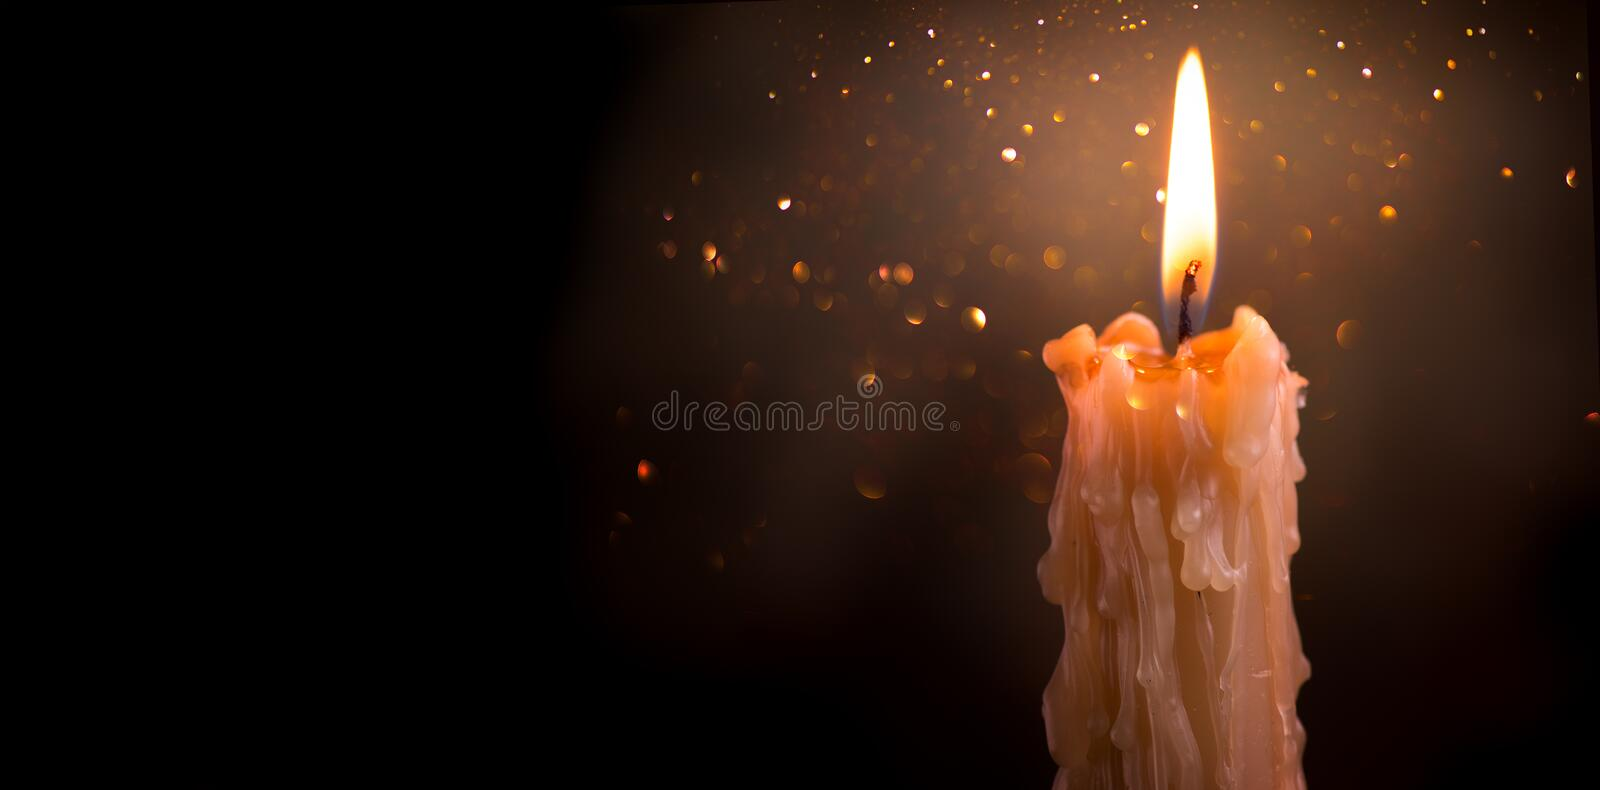 Candle flame closeup on a dark background. Candle light border design. Melted wax candle burning at night. Widescreen stock photography